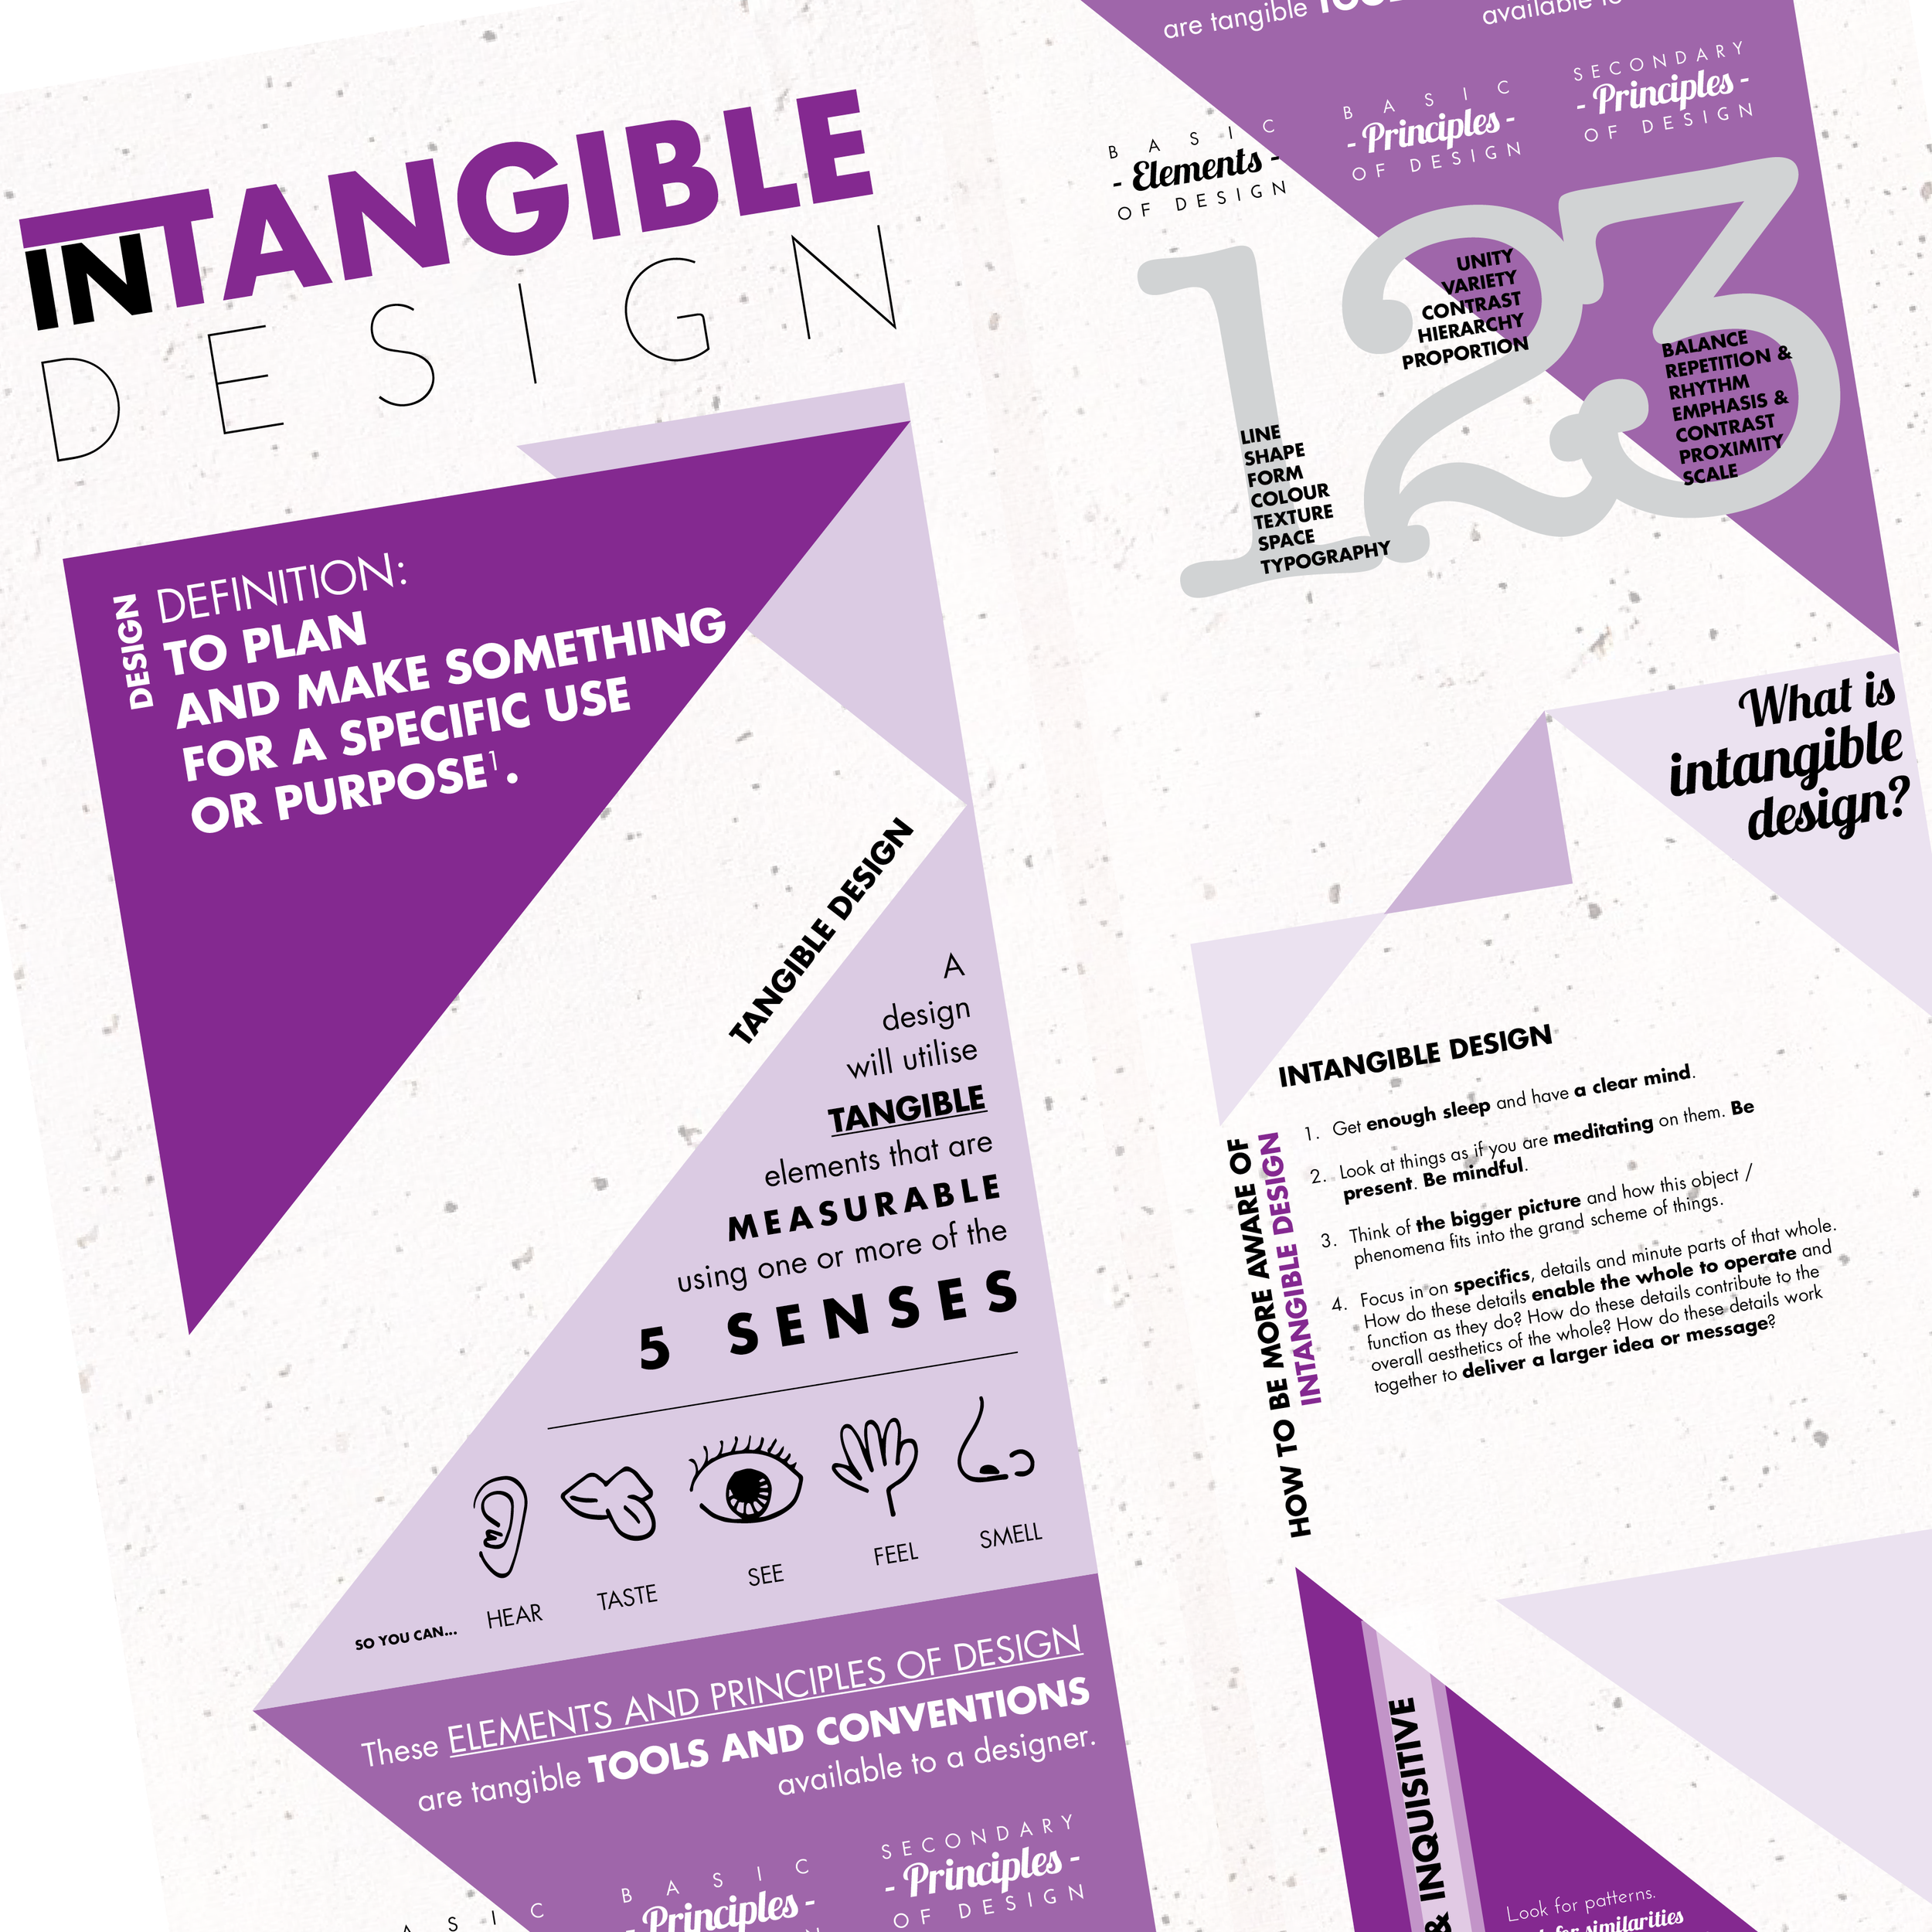 Whether it's wayfinding for an event or an infographic for a presentation, let us make your information more accessible and visually engaging.